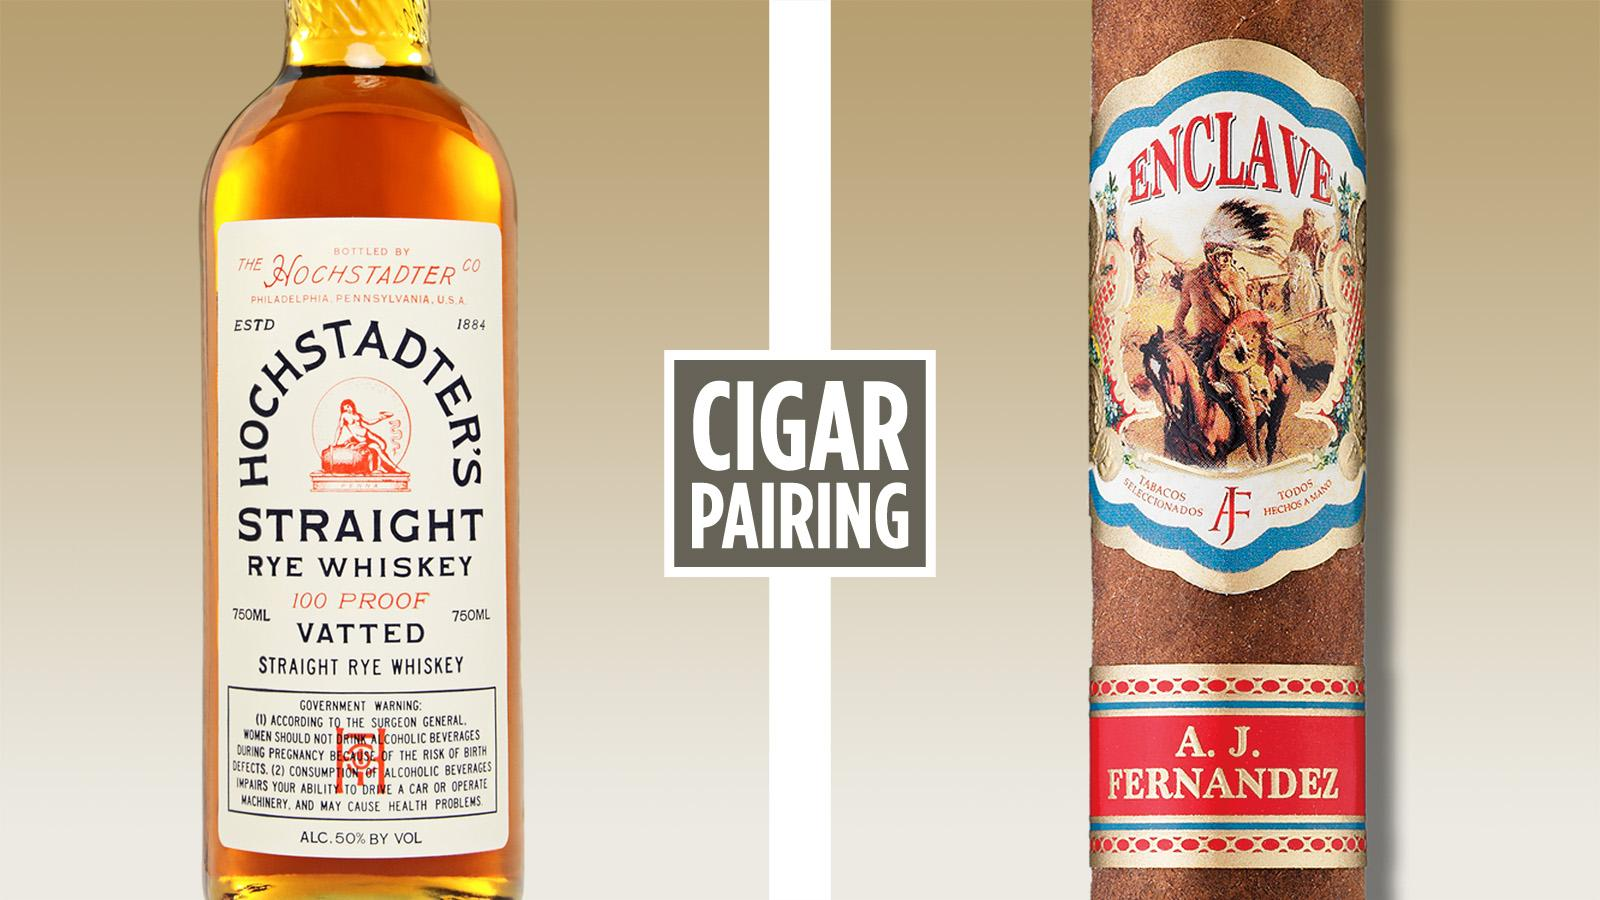 Cigar Pairing: Hochstadter's Vatted Straight Rye Whiskey